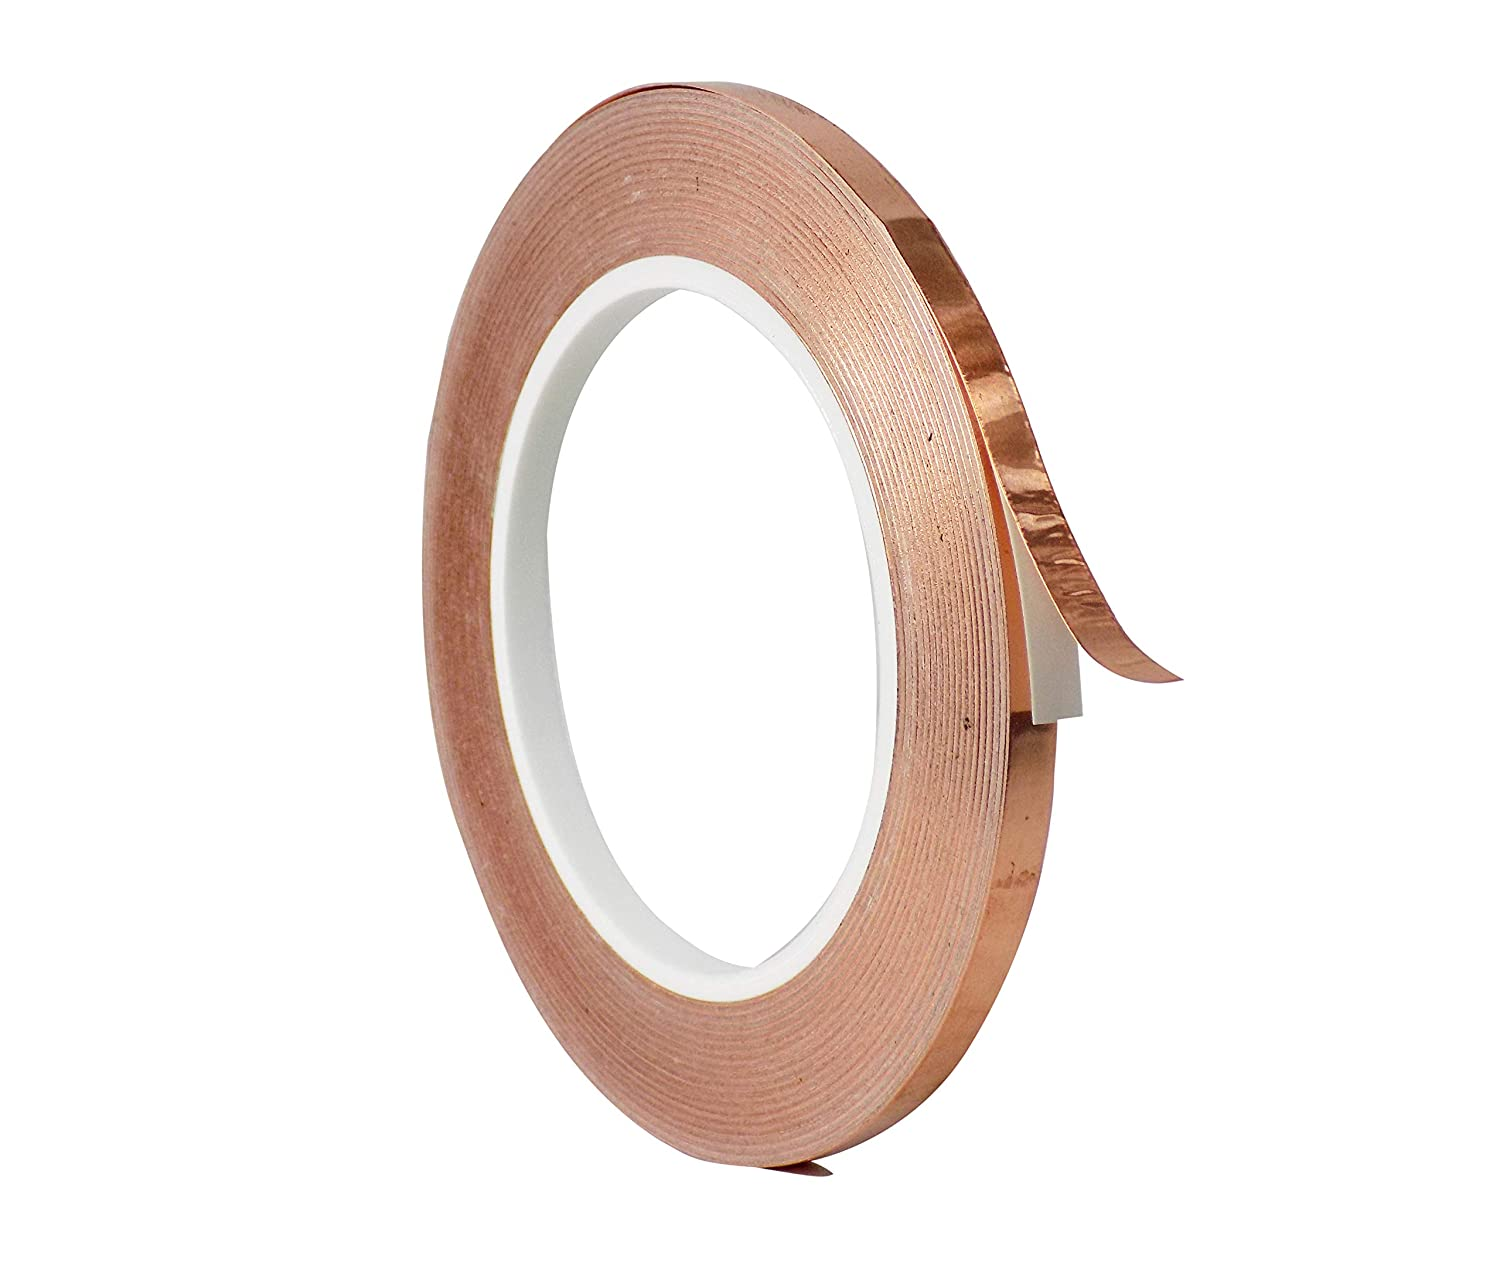 WOD CFTCA Large discharge sale Louisville-Jefferson County Mall Copper Foil Tape with Conductive Adhesive 1 4 - inch x